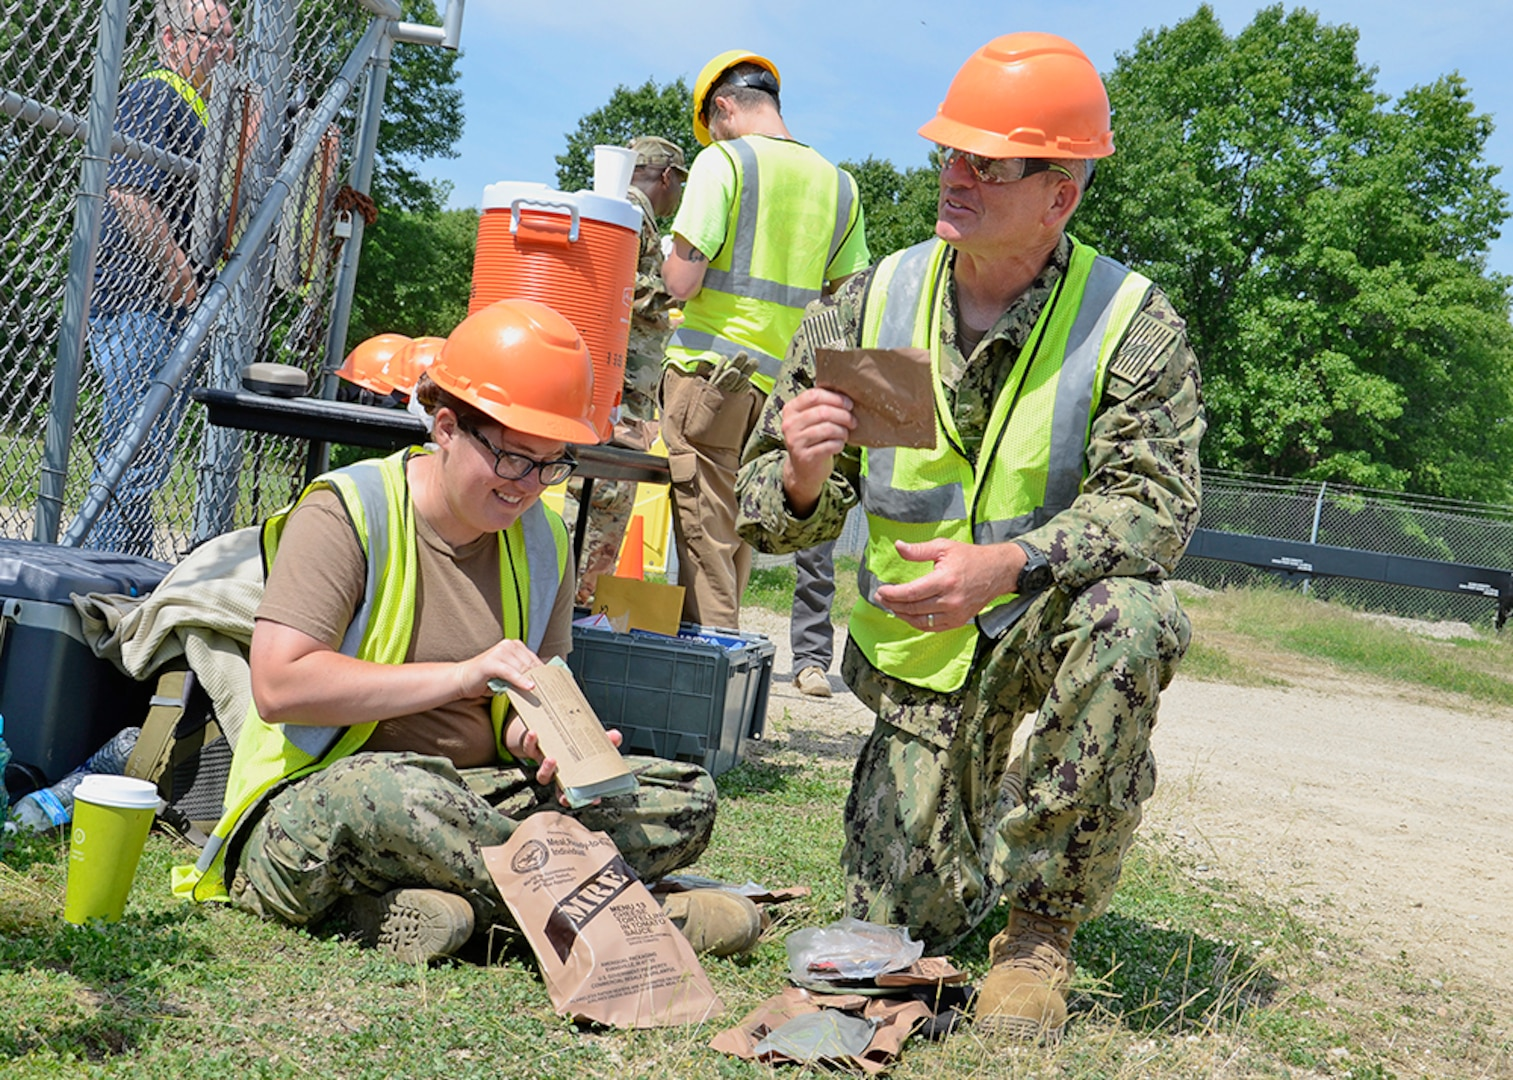 """Navy Petty Officer 3rd Class Stephanie Scholz and Chief Petty Officer David Somerville take a break to enjoy their Meal, Ready-to-Eat, commonly referred to as """"MREs,"""" during OCORT in June."""